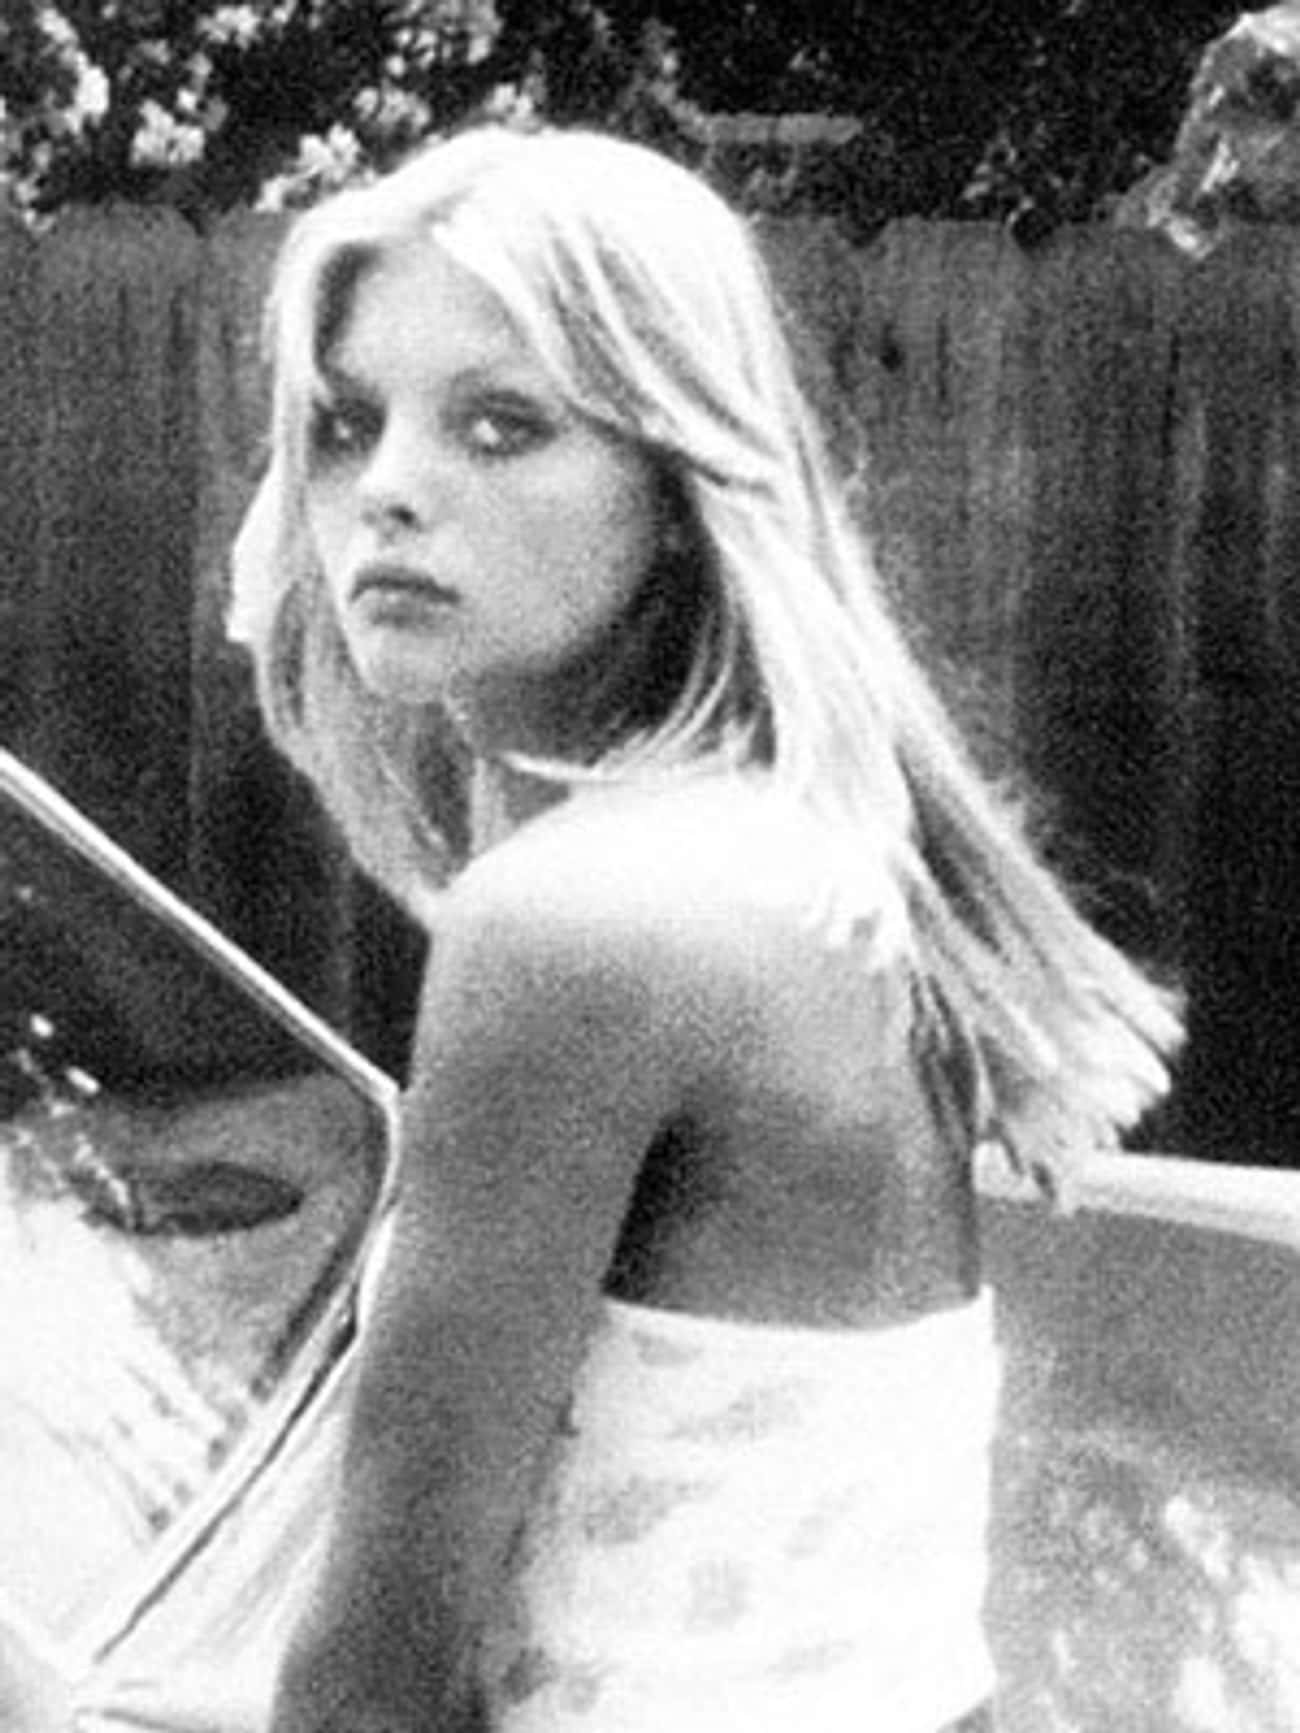 Young Michelle Pfeiffer in a White Tank